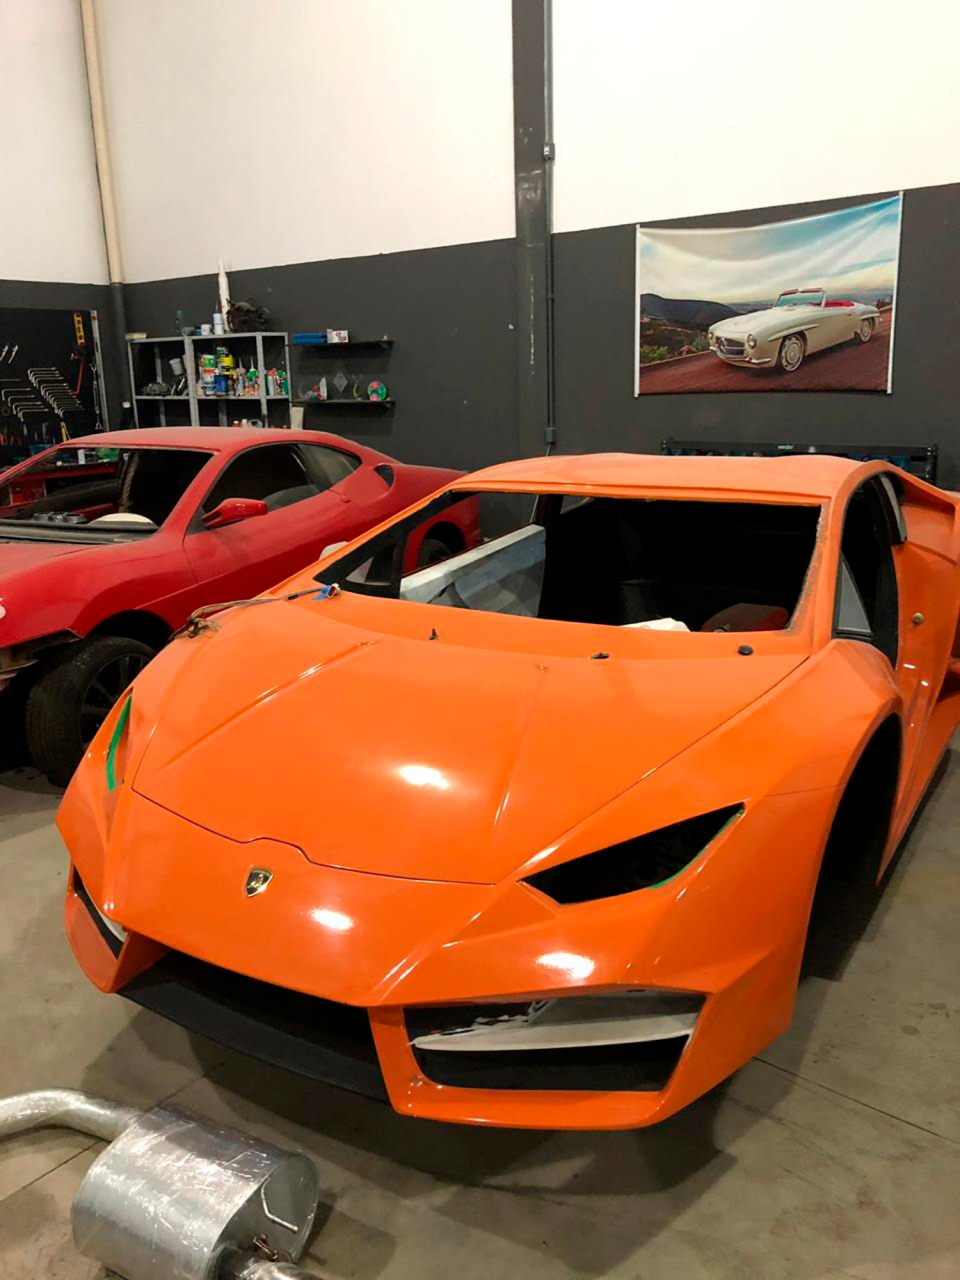 This July 15, 2019 photo released by Itajai Civil Police shows luxury car replicas inside a workshop in Itajai, Brazil. (Itajai Civil Police via AP)